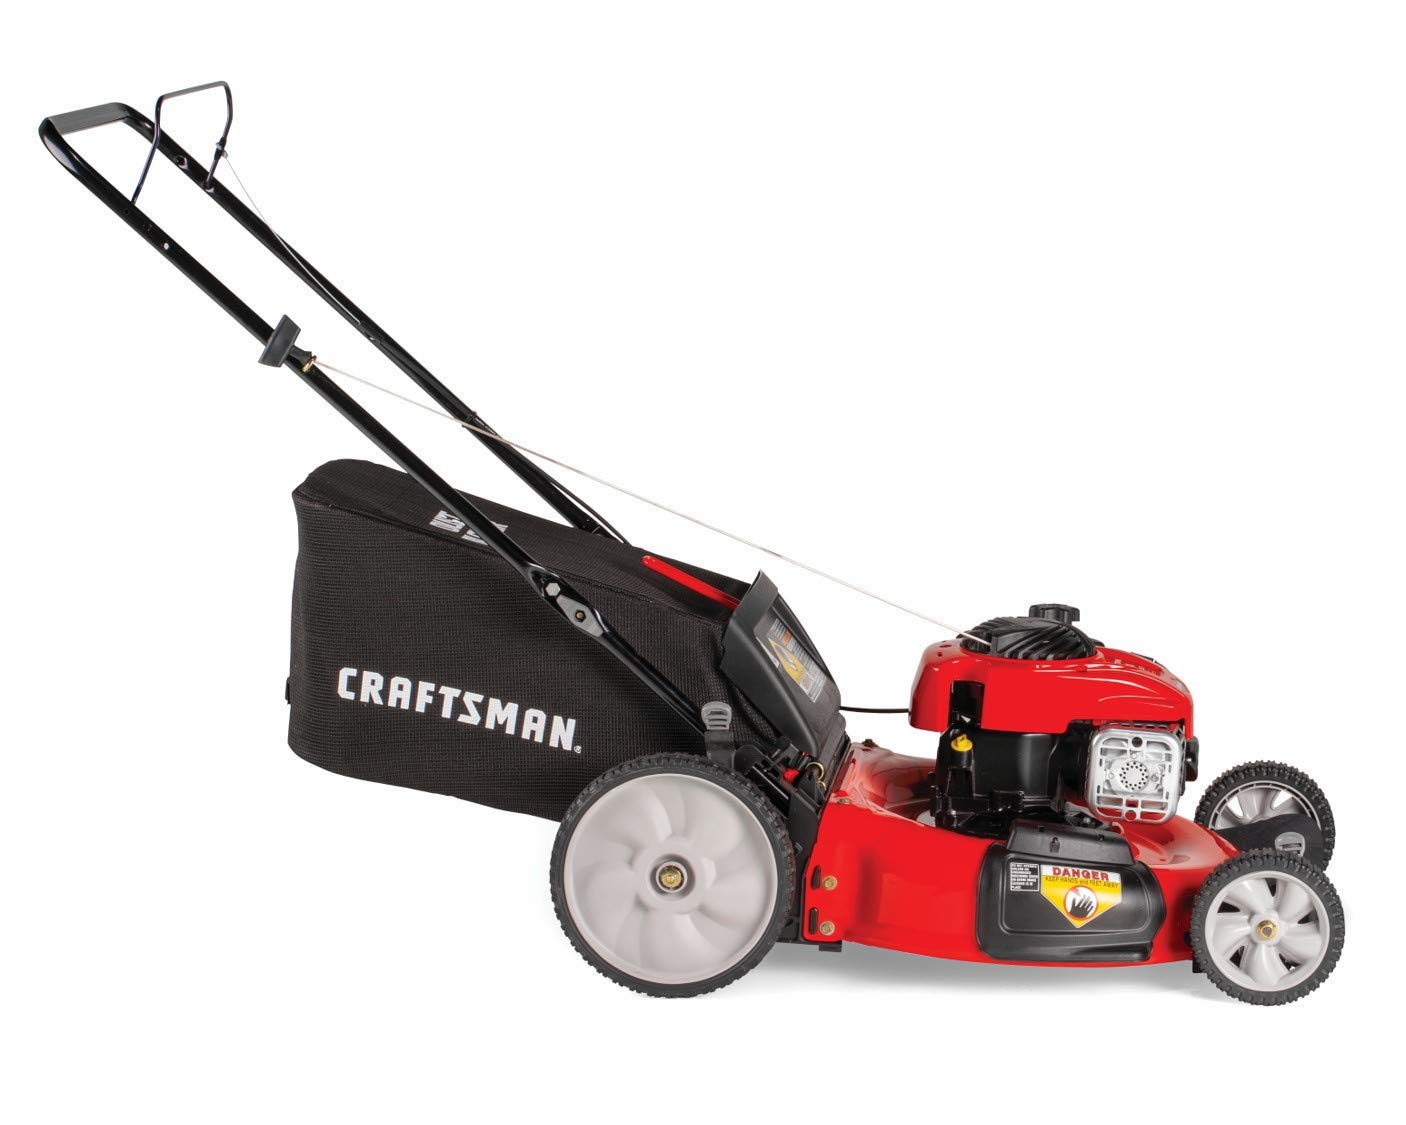 Craftsman M115 11A-B25W791 Push Lawn Mower, Red 3 140CC OHV GAS POWERED ENGINE: Powerful Briggs and Stratton 550E gas engine comes equipped with recoil and primer. 3-IN-1 CAPABILITIES: Unit has side discharge, rear discharge, and mulching capabilities. 21-INCH CUTTING DECK: Efficient cutting deck helps trim grass in one quick pass for an easier yard job.